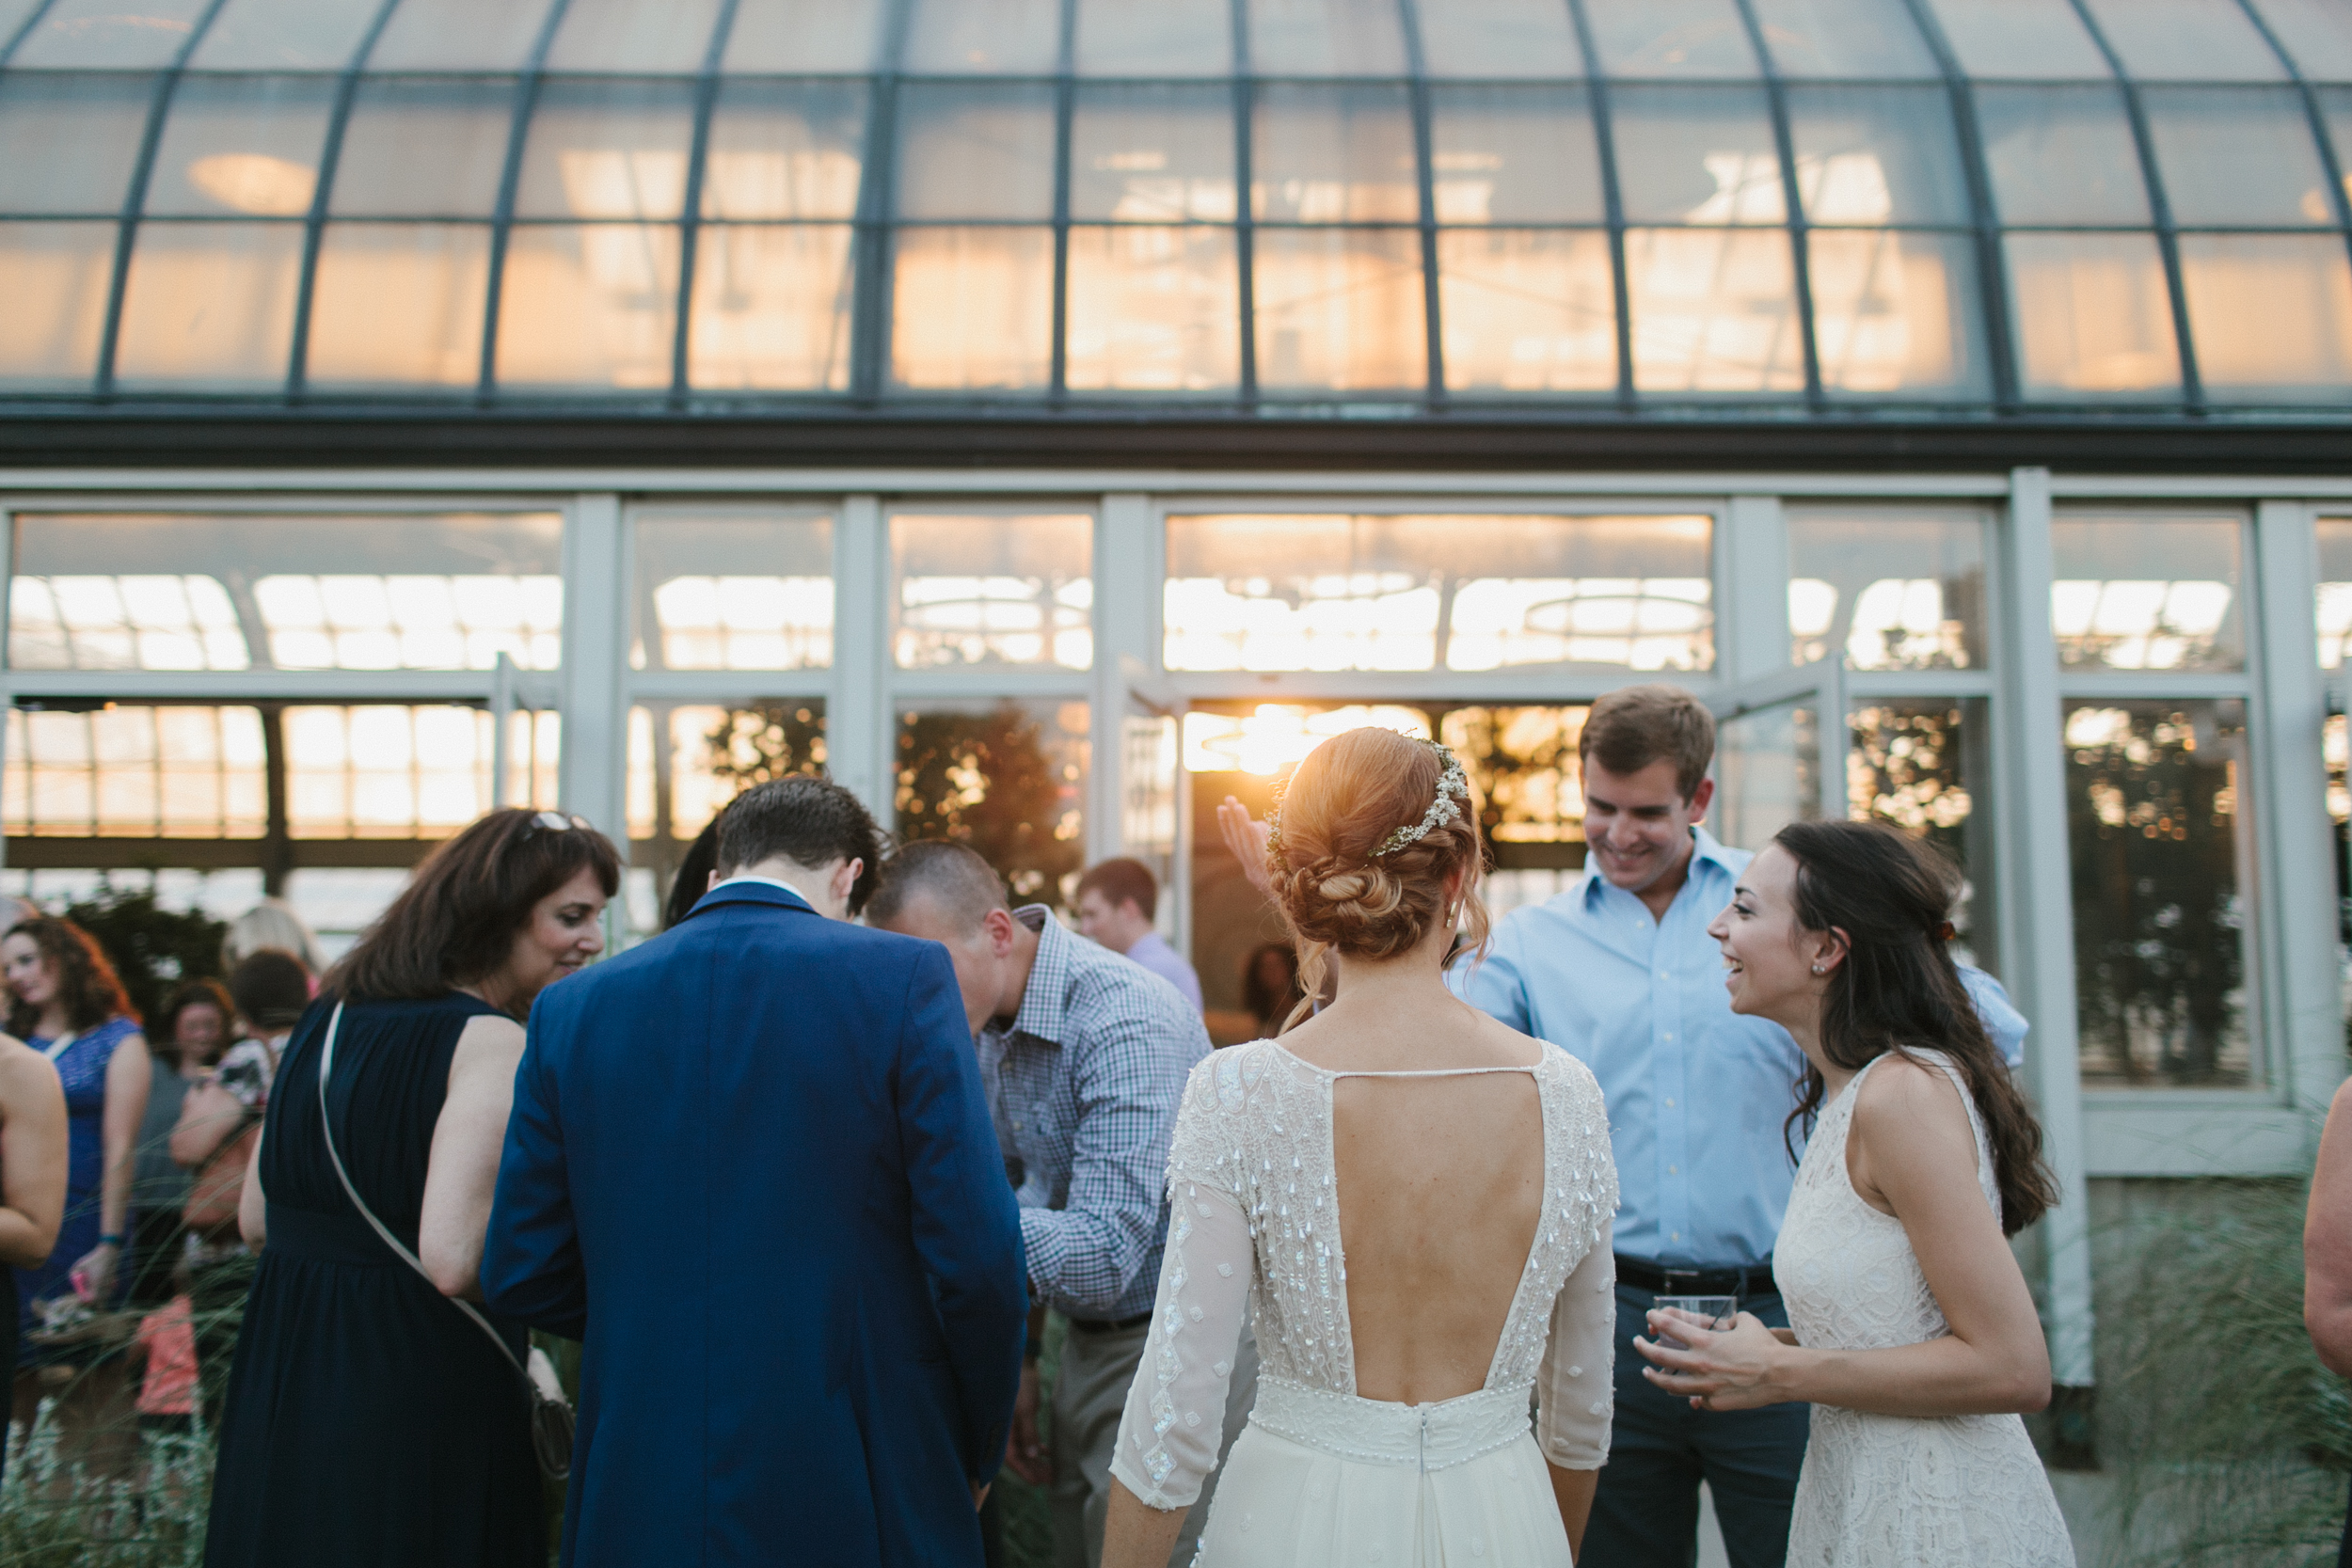 Chicago Wedding Garfield Park Conservatory Mae Stier Wedding Photographer Lifestyle Photography Midwest California-112.jpg